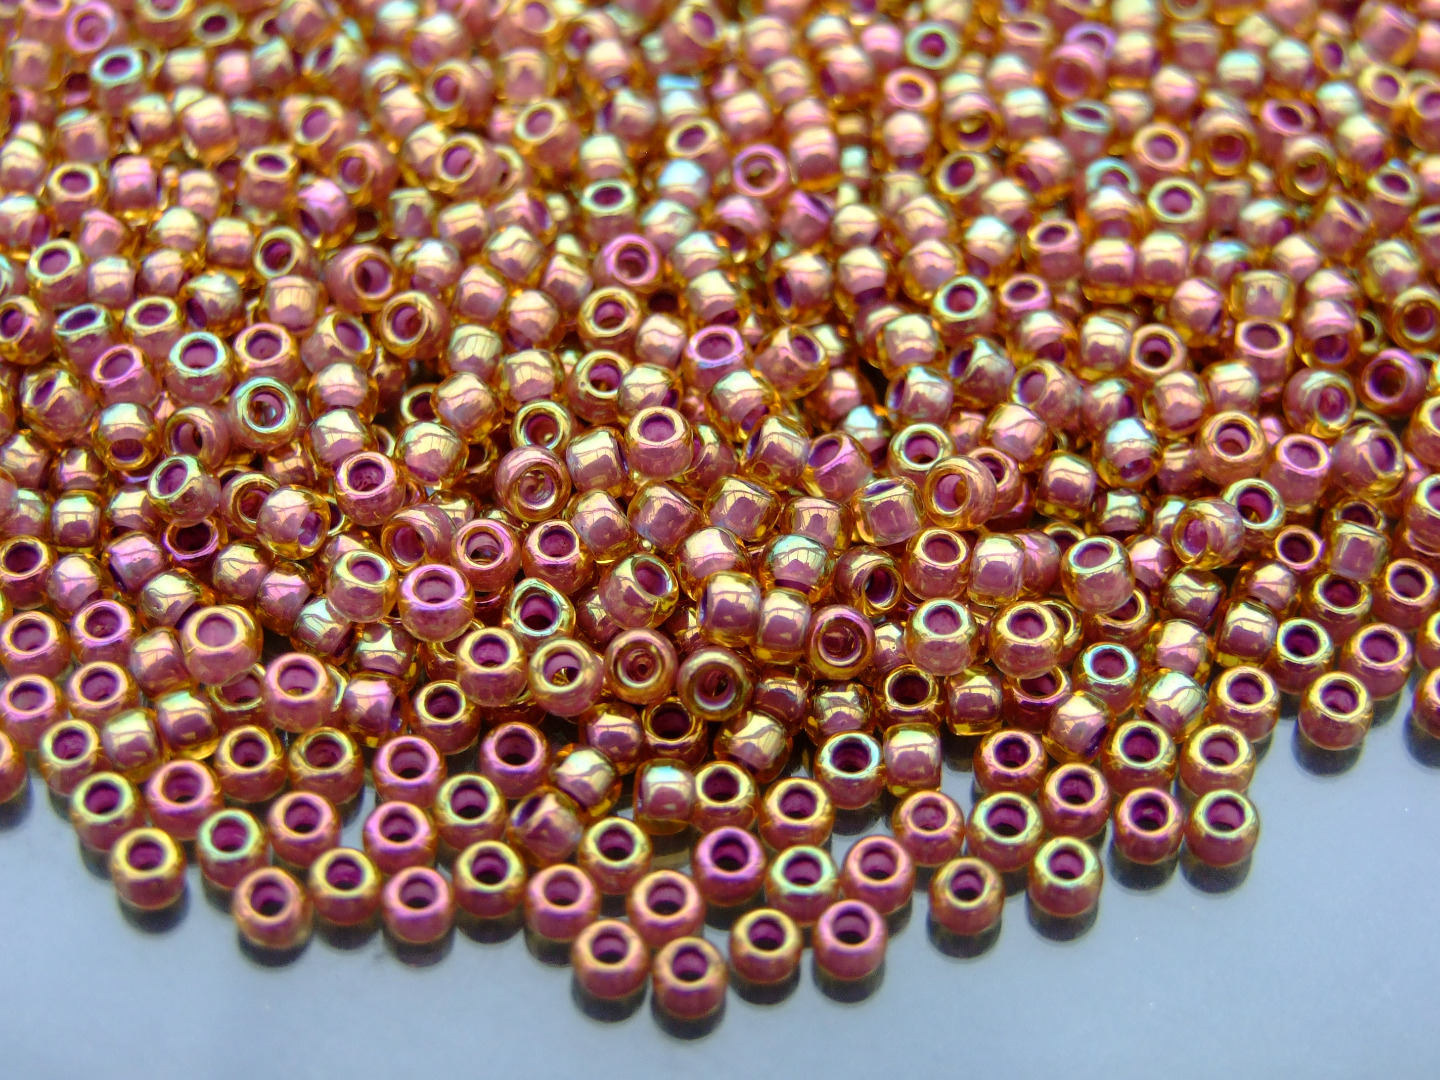 10g-Toho-Japanese-Seed-Beads-Size-8-0-3mm-180-Colors-To-Choose thumbnail 80